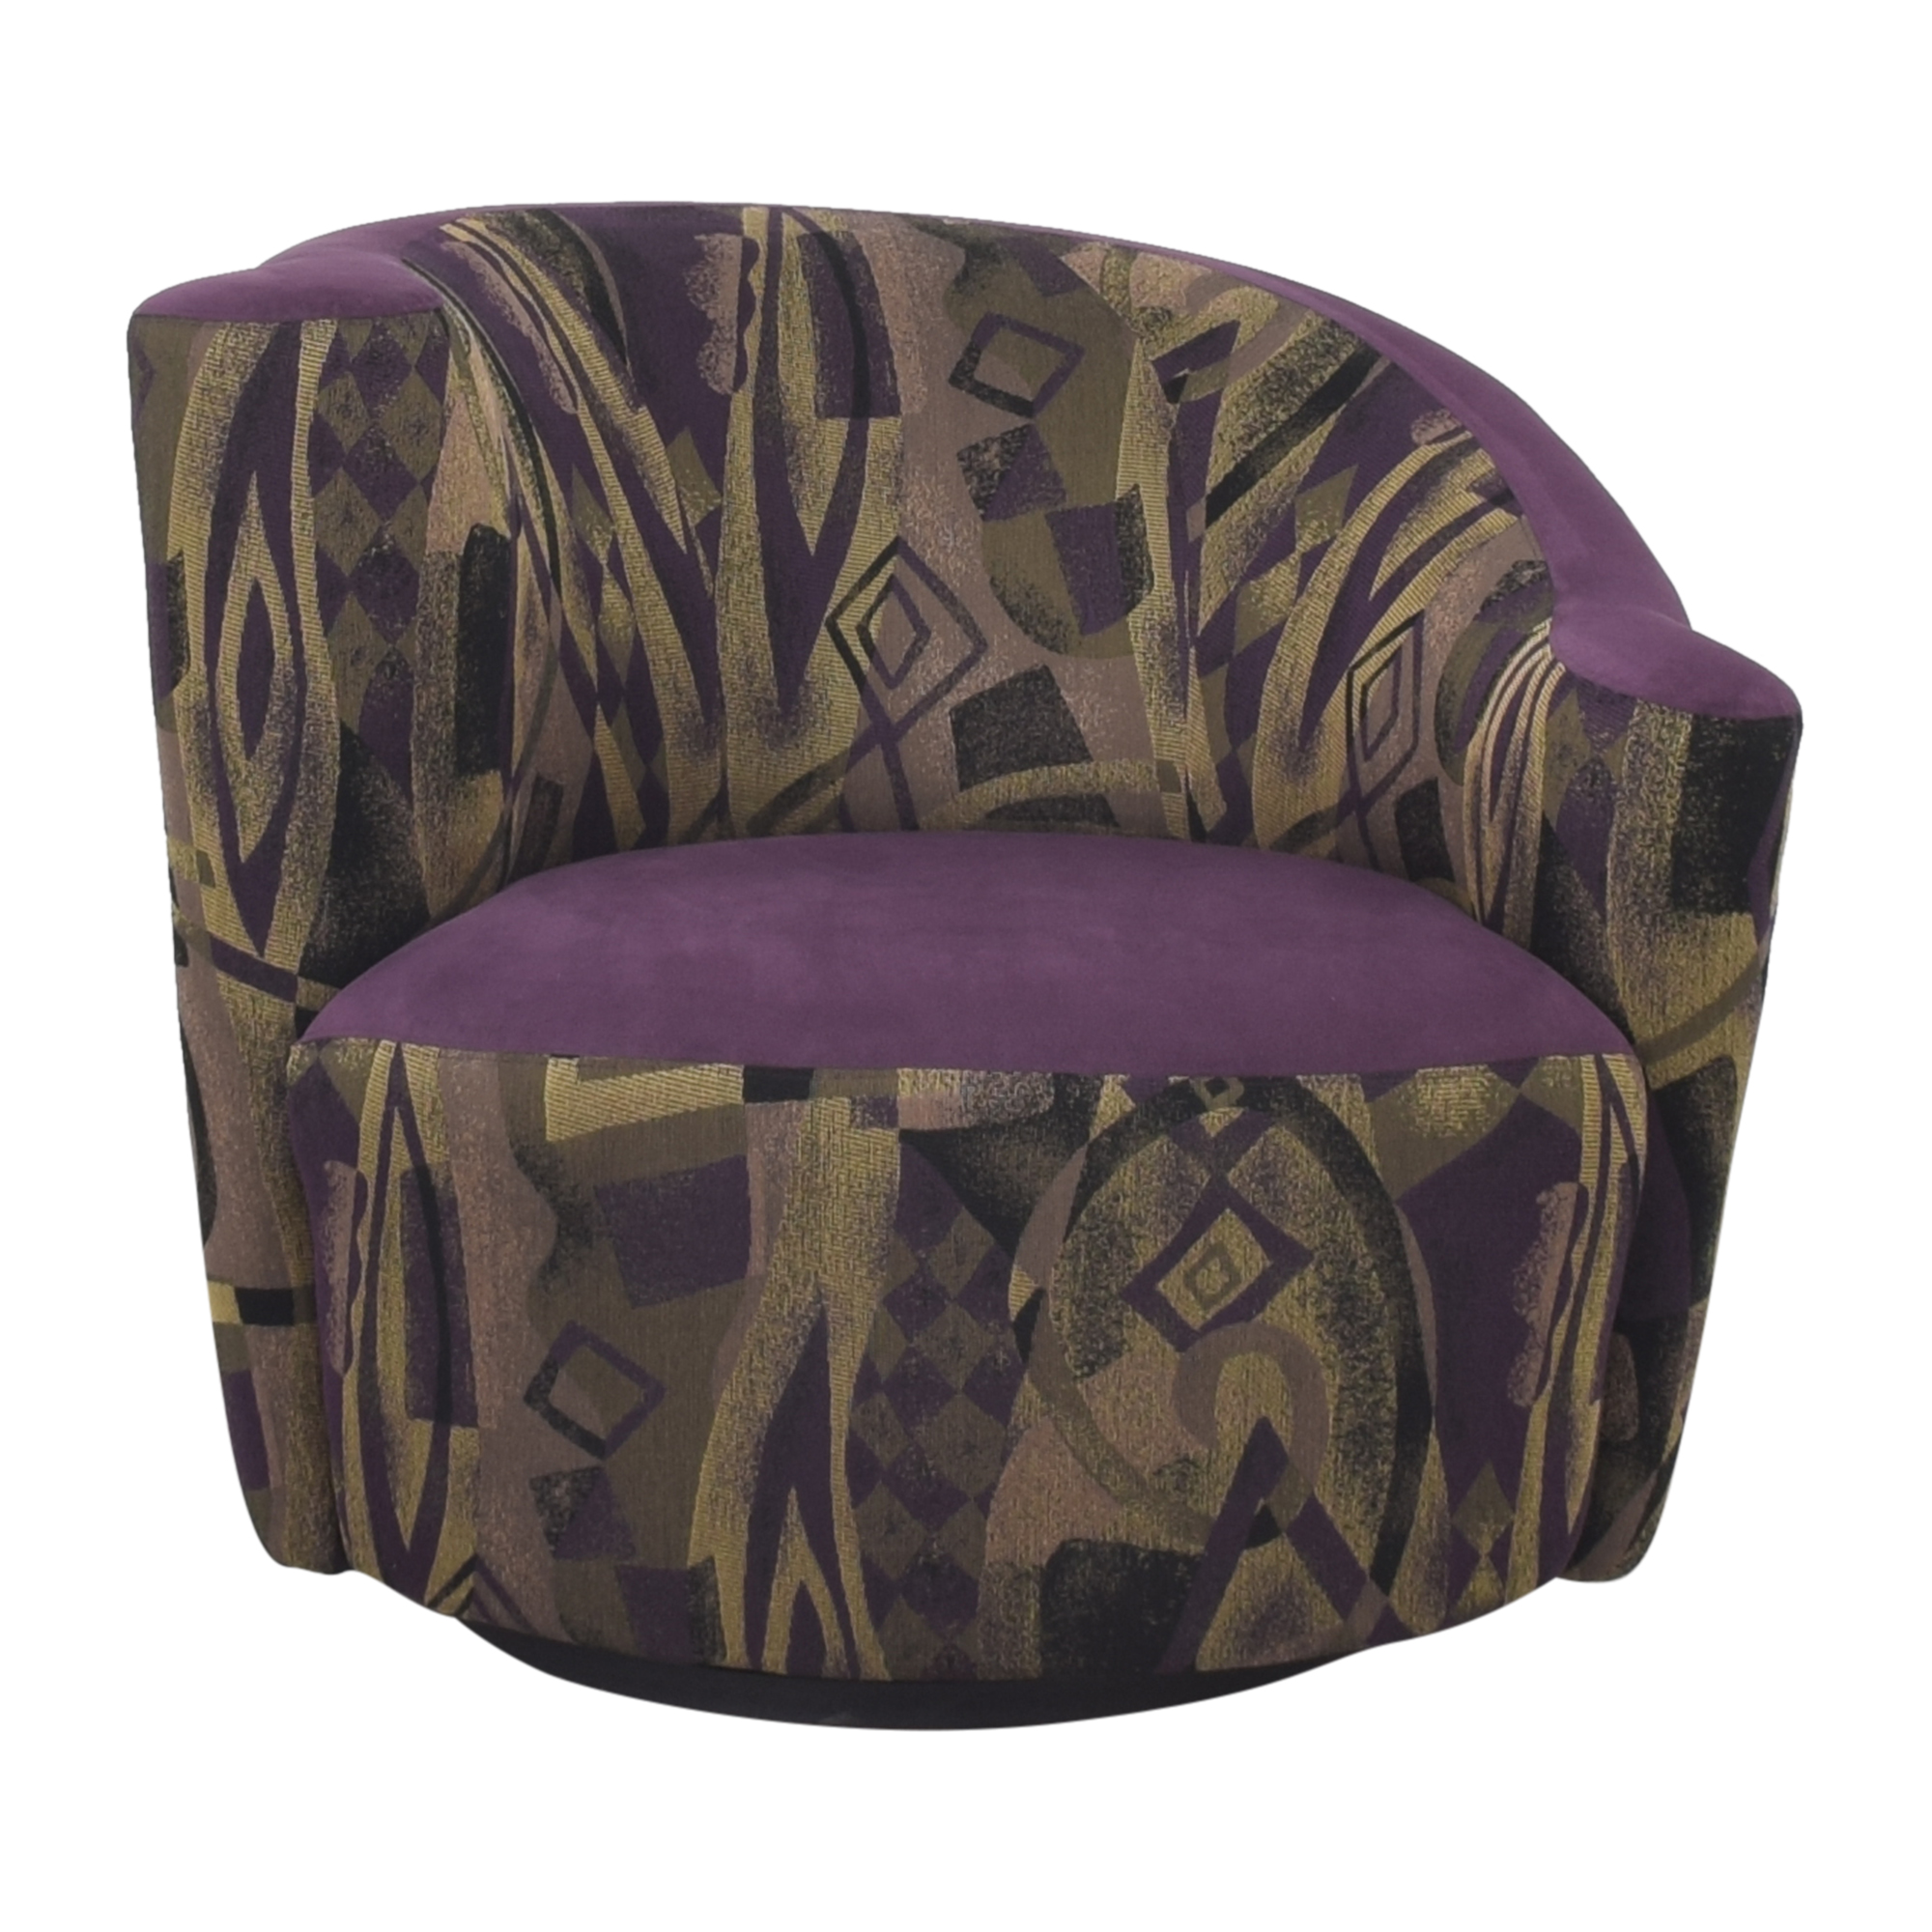 Weiman Weiman Nautilus Lounge Chair and Ottoman nj